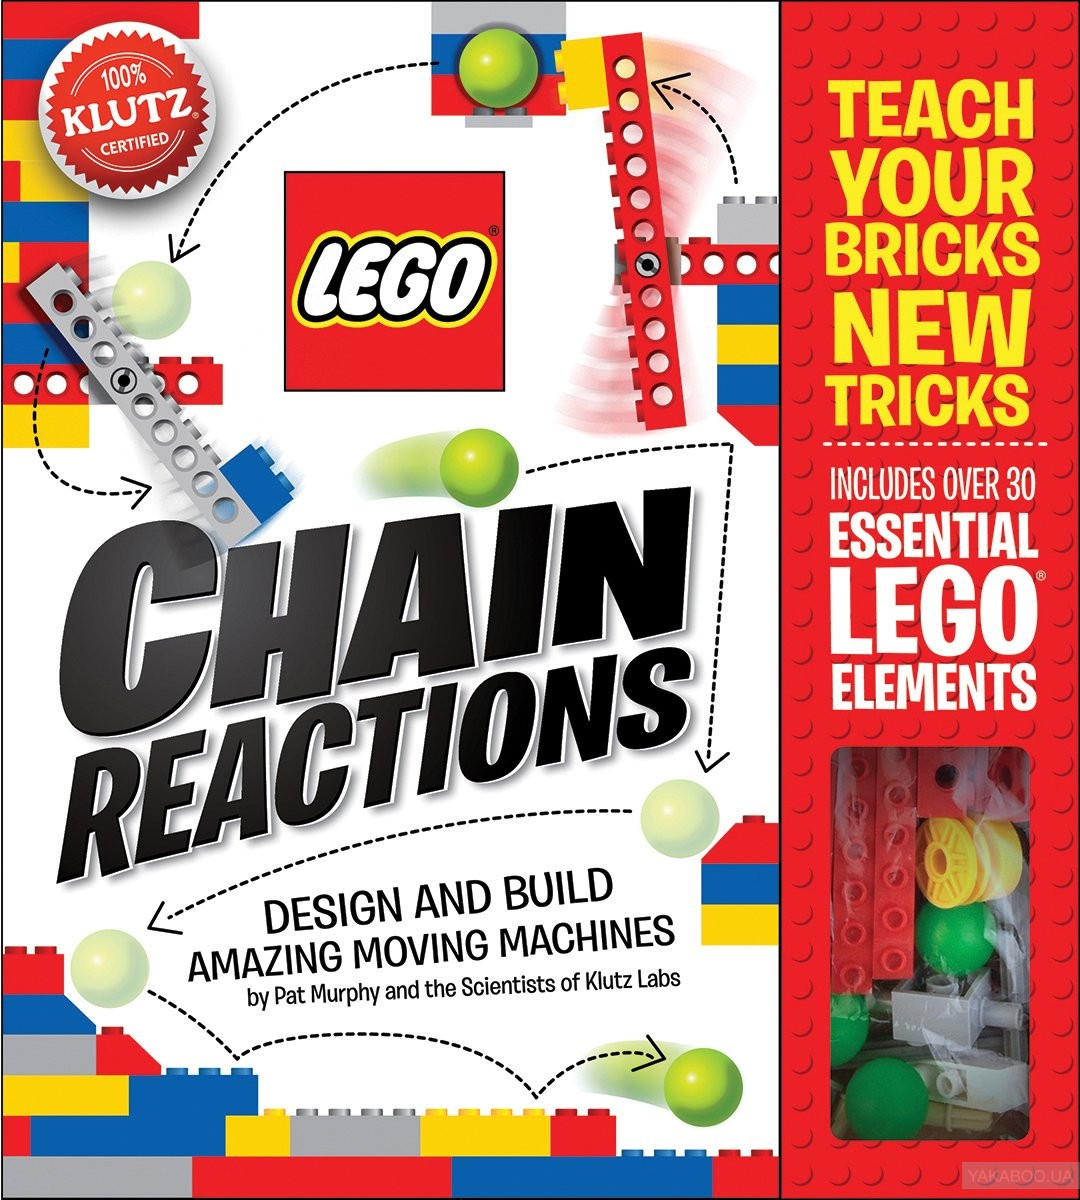 LEGO Chain Reactions: Design and build amazing moving machines